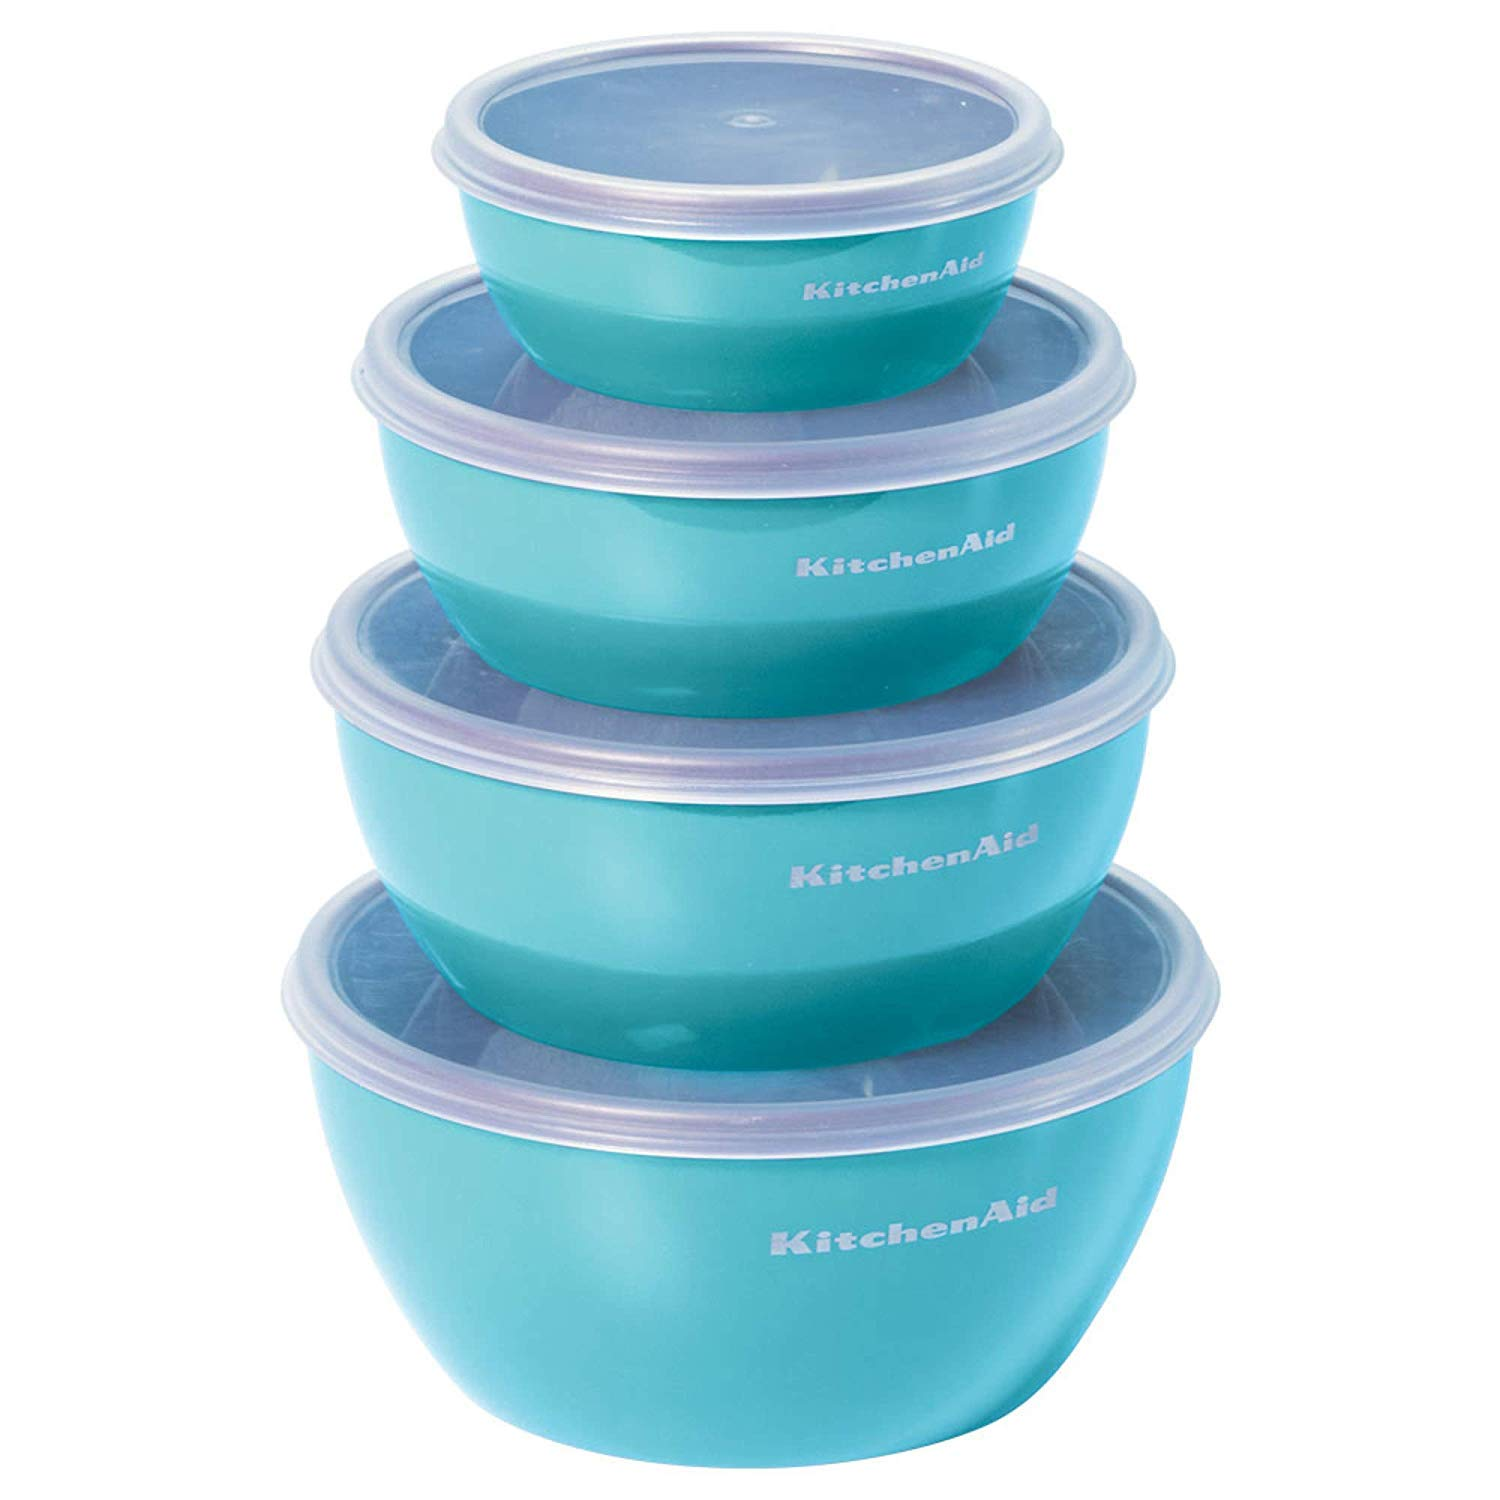 KitchenAid Prep Bowls with Lids, Set of 4, Aqua Sky